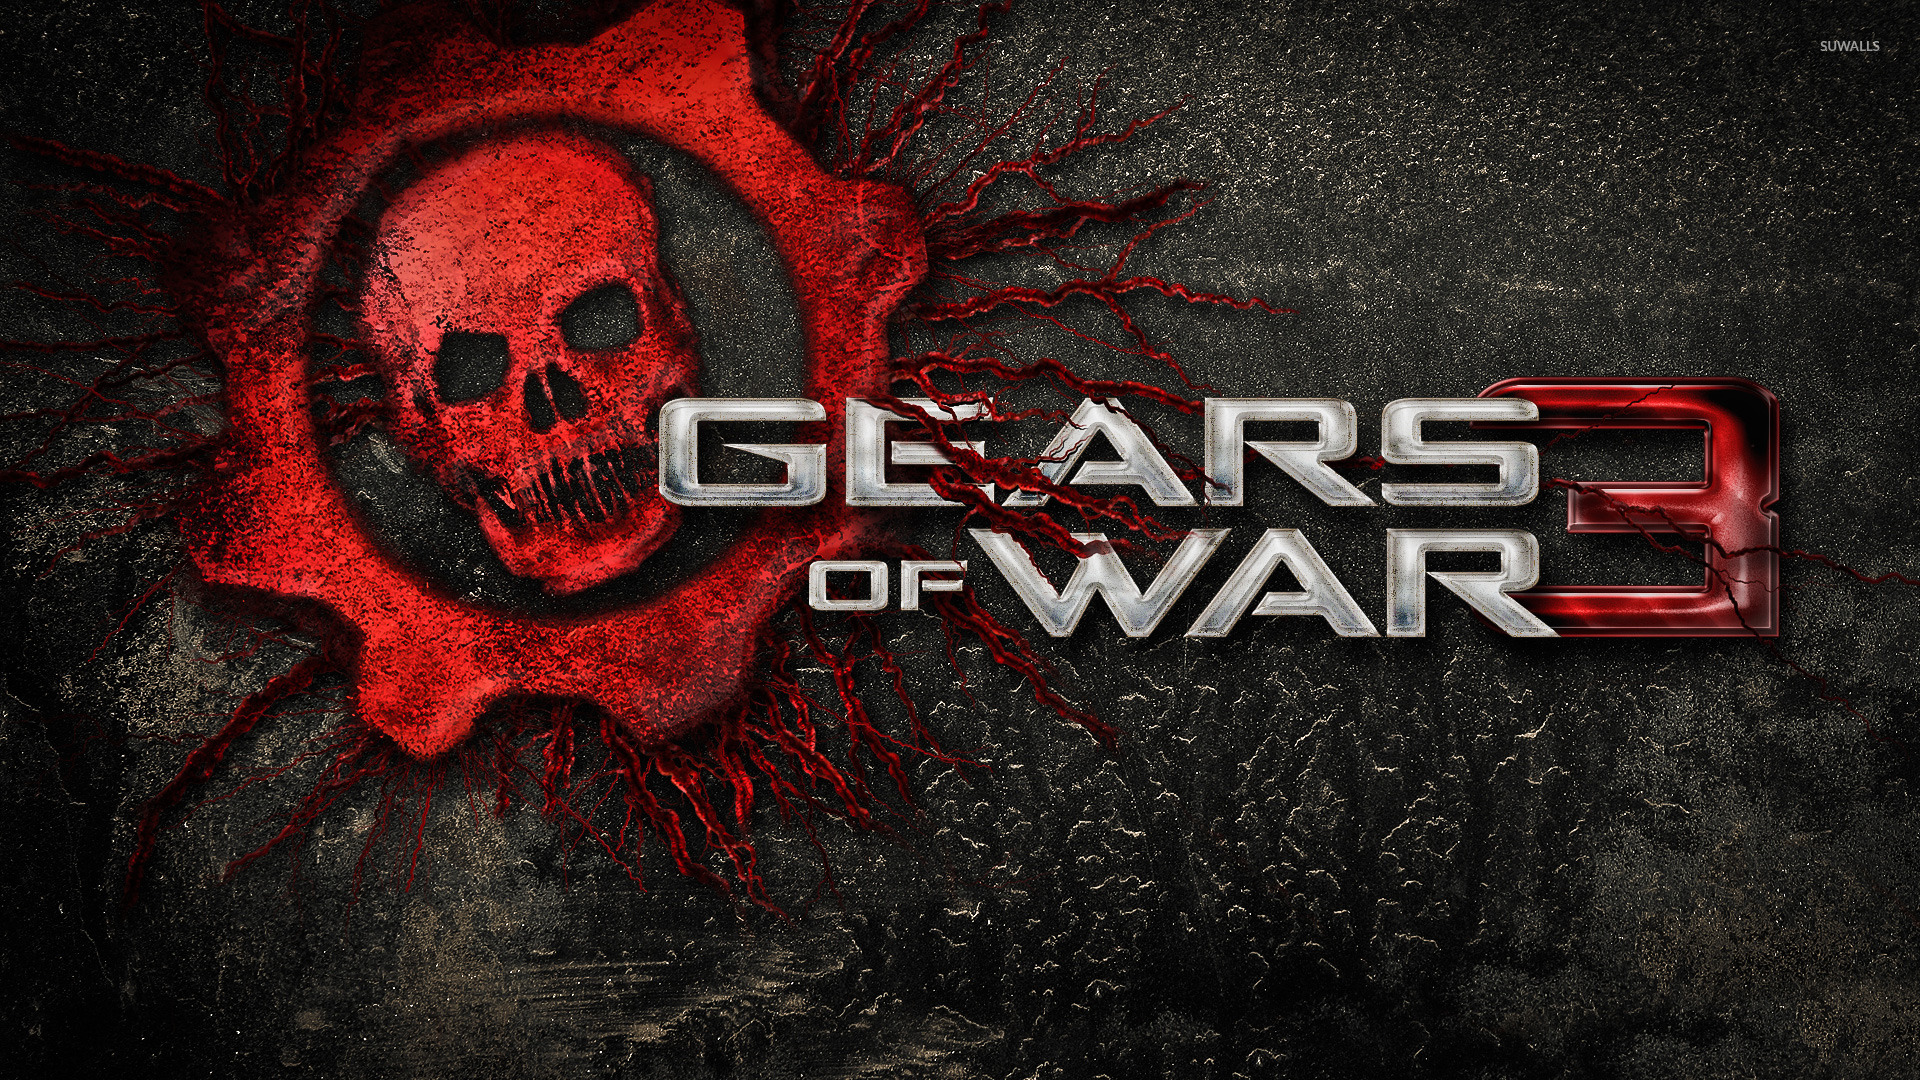 gears of war 3 [2] wallpaper - game wallpapers - #9578